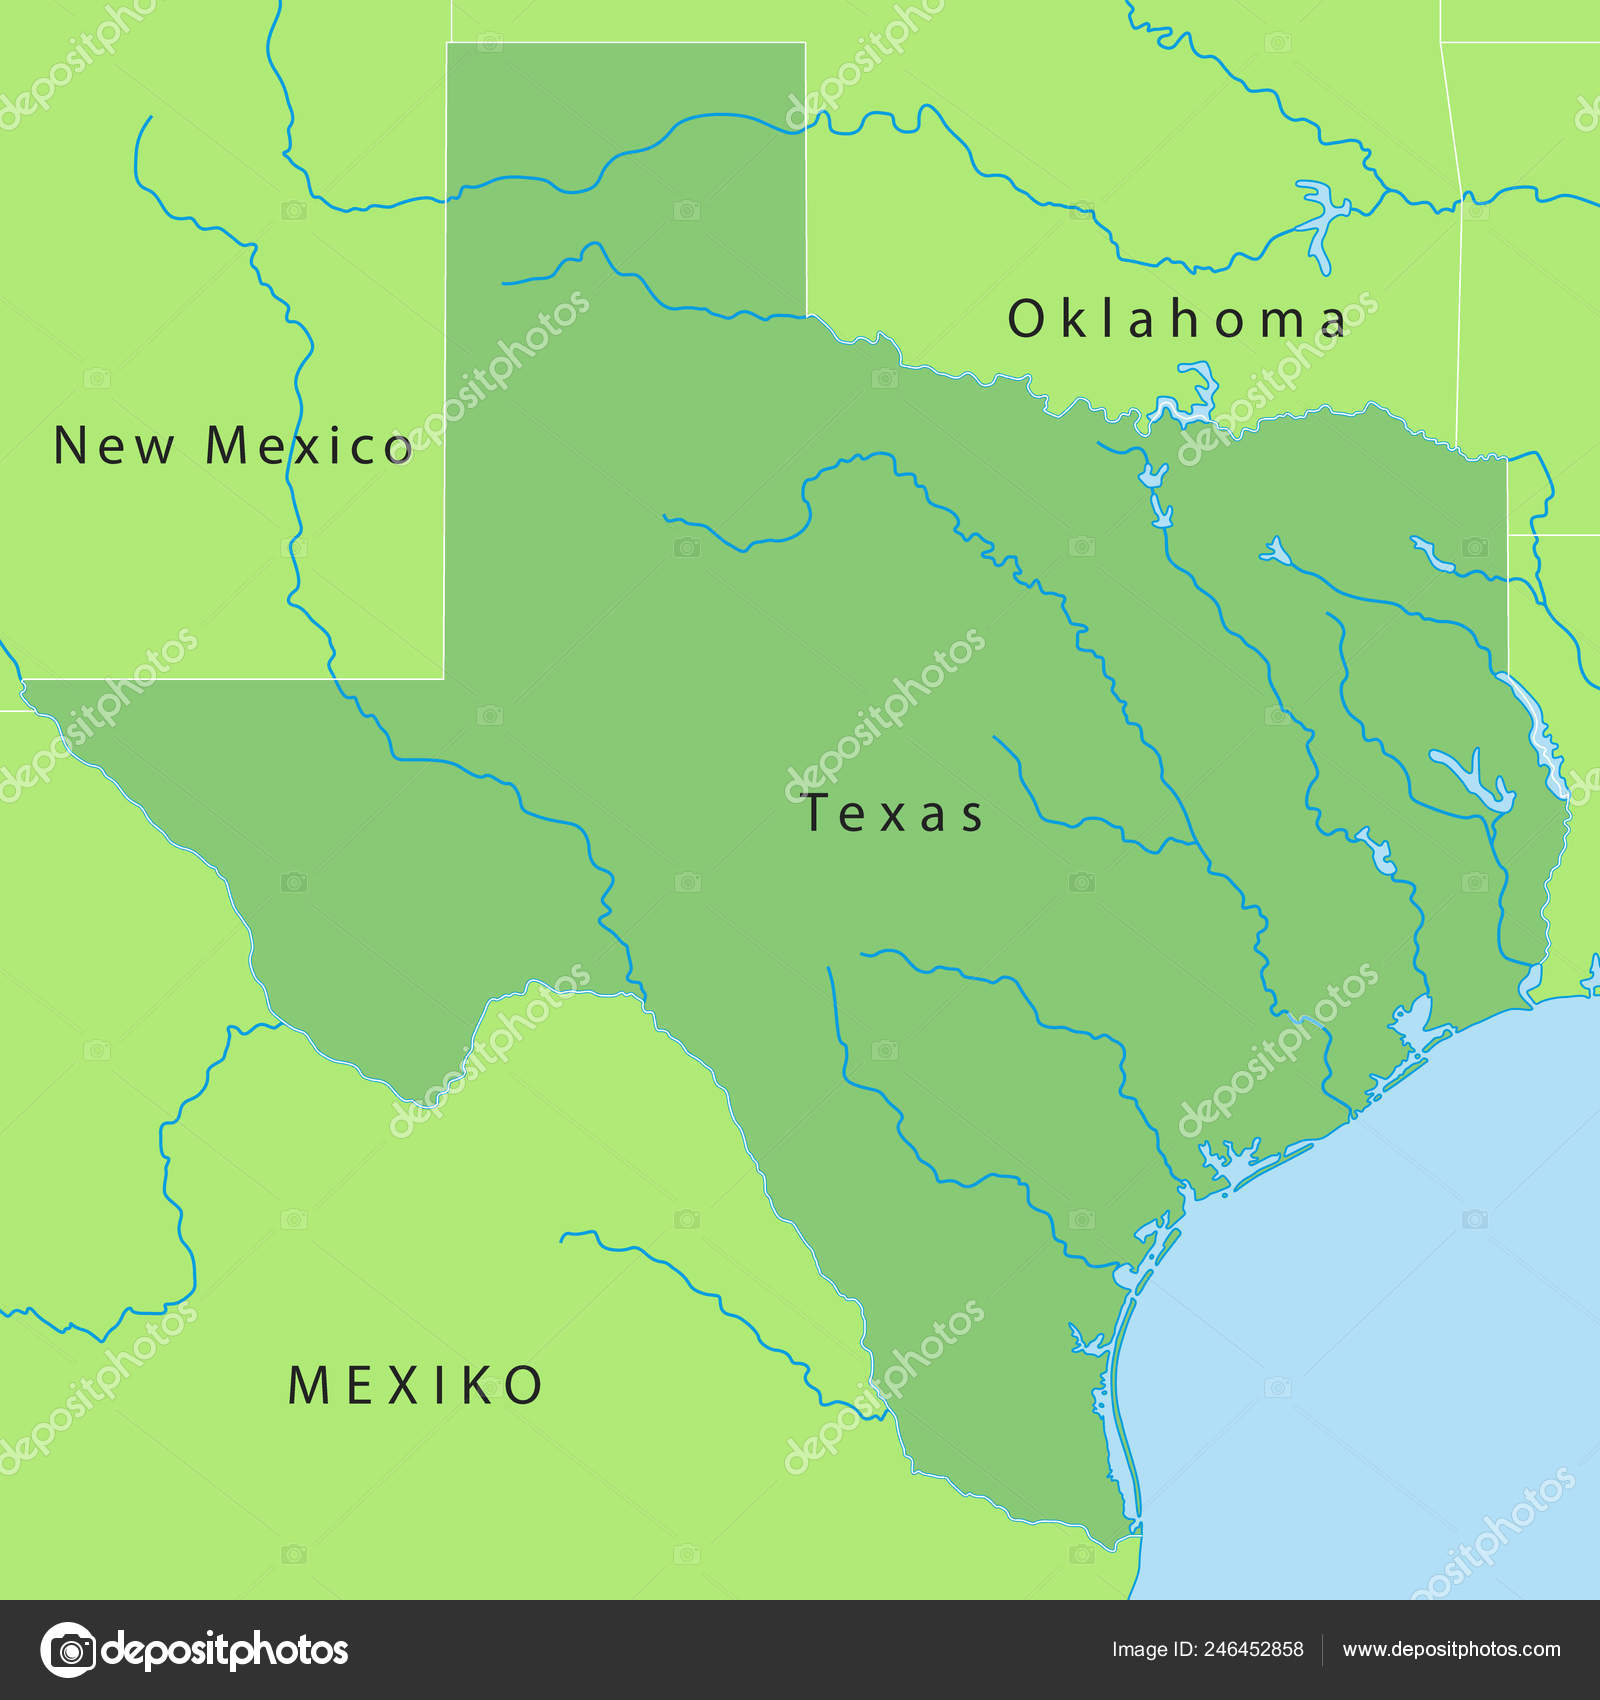 Map Texas High Detailed Vector — Stock Vector © ii-graphics ... on lakes of texas, detailed texas map with cities and towns, well known landmarks in texas, the three branch of texas, us map texas, hotels of texas, all cities in texas, mapquest maps south texas, austin texas, sun of texas, google of texas, weather of texas, detailed texas road atlas, winds of texas, project of texas, republic of texas, borger tx map texas, southern coast of texas, flickr texas, business of texas,